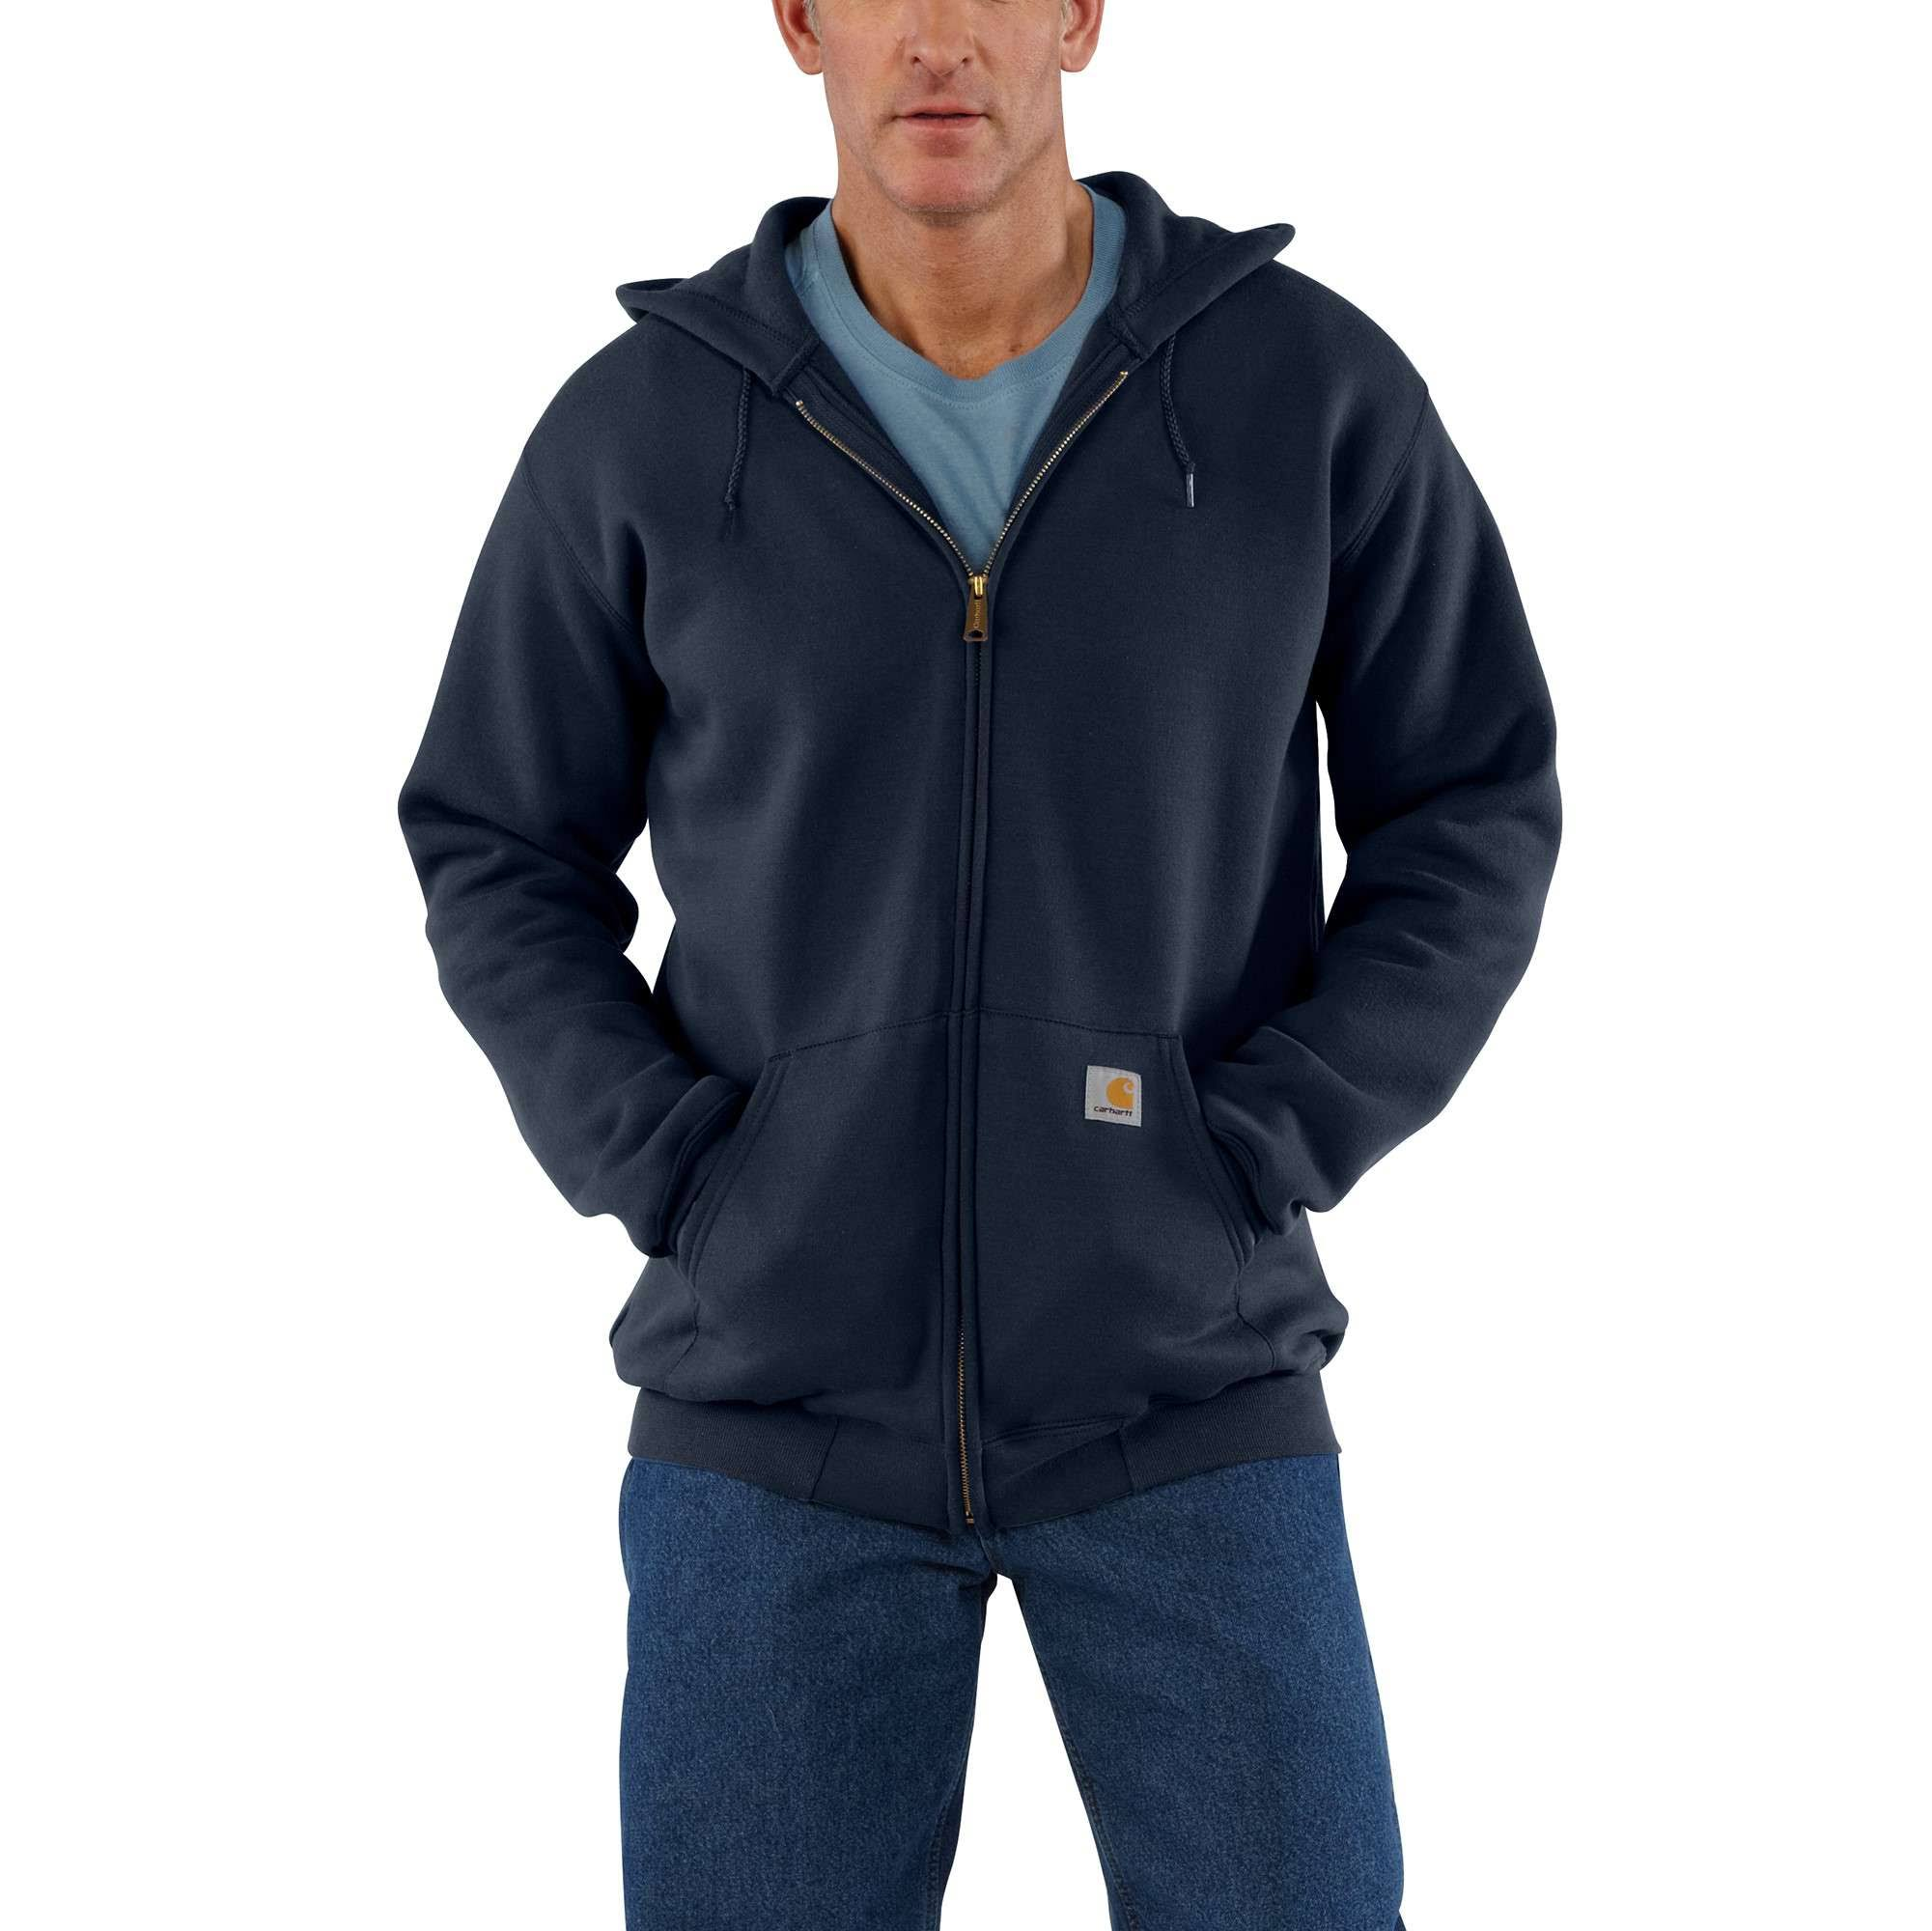 Carhartt Men's Midweight Zip Front Hooded Sweatshirt K122 - Navy, Large